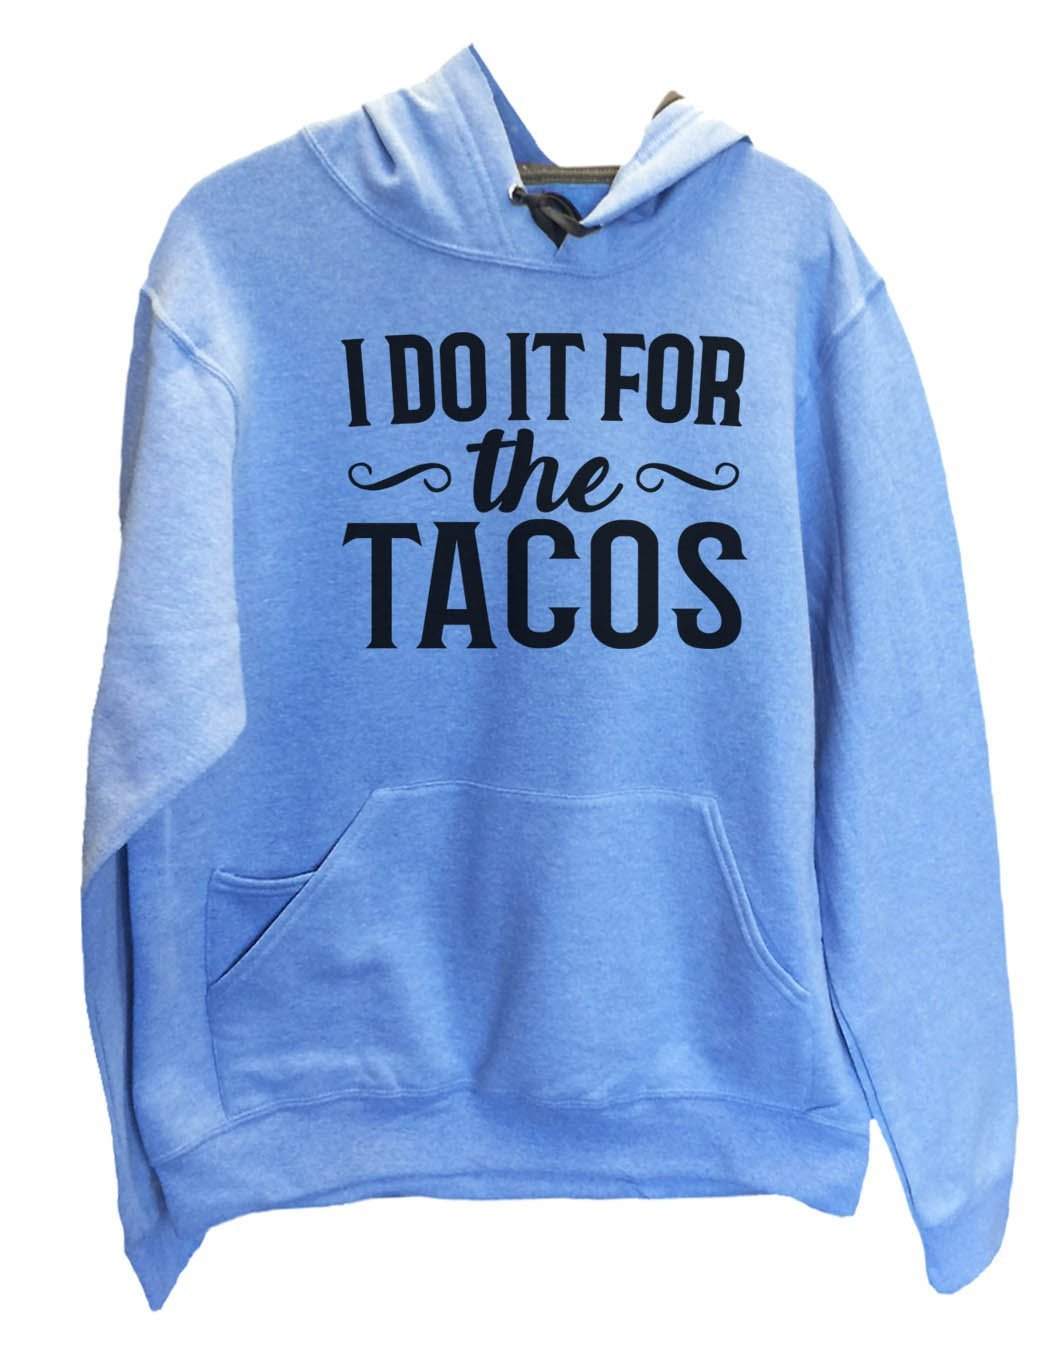 UNISEX HOODIE - I Do It For The Tacos - FUNNY MENS AND WOMENS HOODED SWEATSHIRTS - 2121 Funny Shirt Small / North Carolina Blue